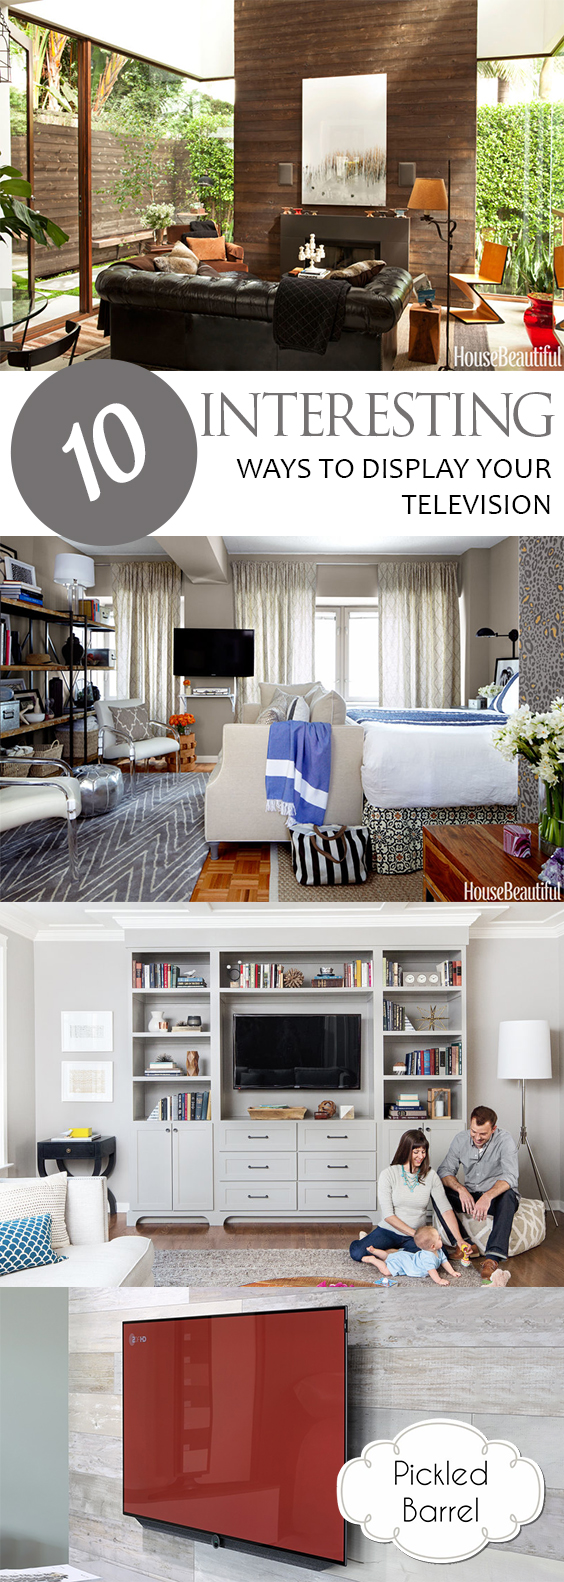 10 Interesting Ways to Display Your Television| How to Display Your Television, DIY Living Room, How to Decorate Your Living Room, Living Room Decor, How to Display a Television, Living Room Hacks, DIY Home, DIY Home Decor